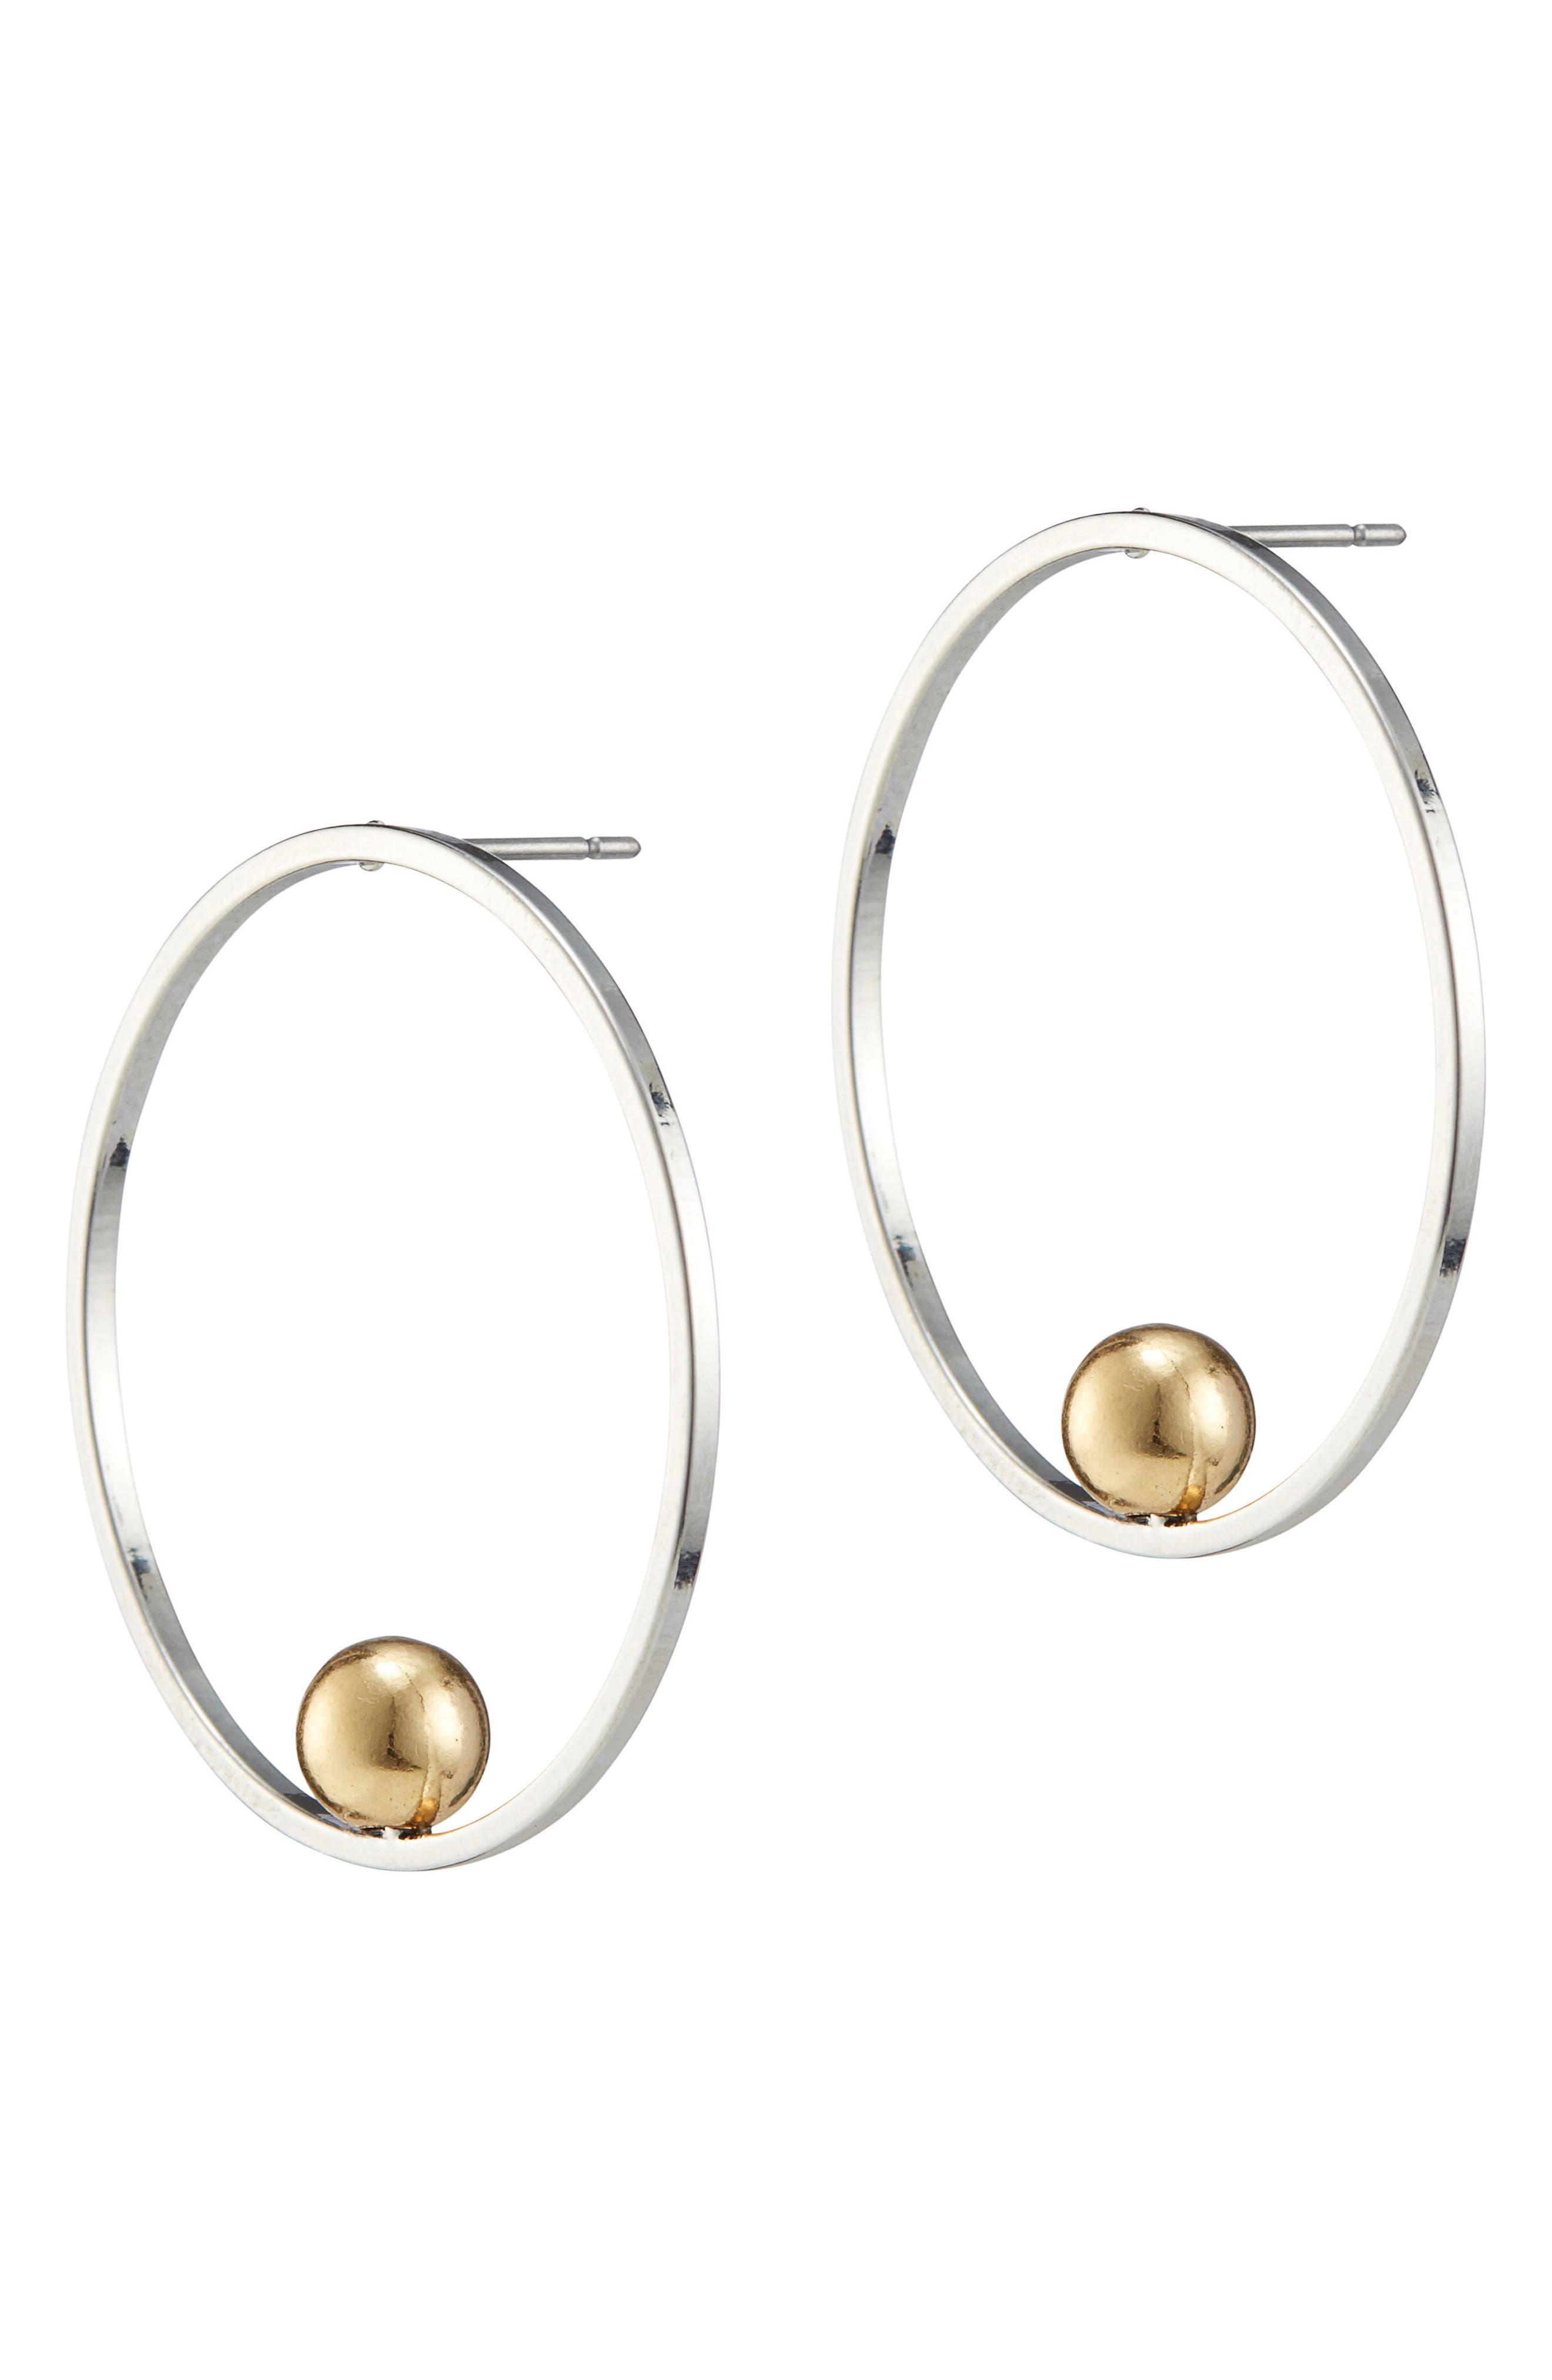 Saros Hoop Earrings,                         Main,                         color, 040